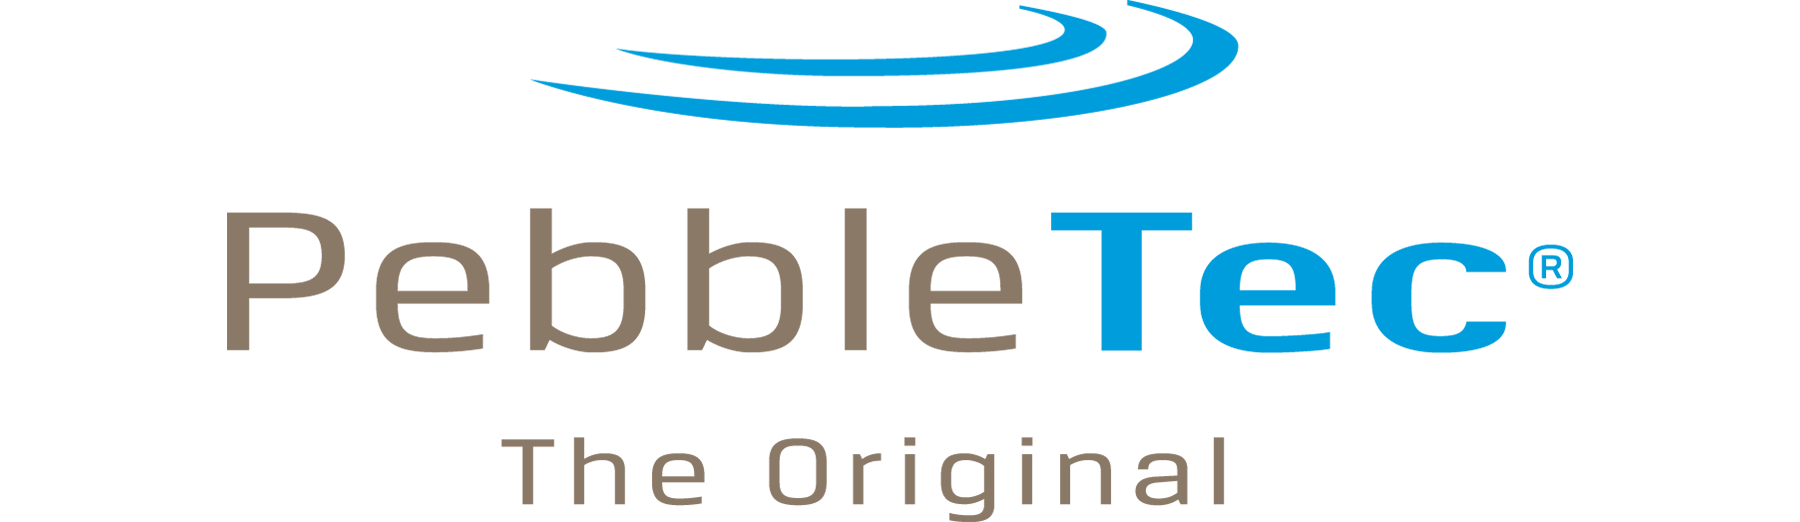 PebbleTec pool surfaces logo